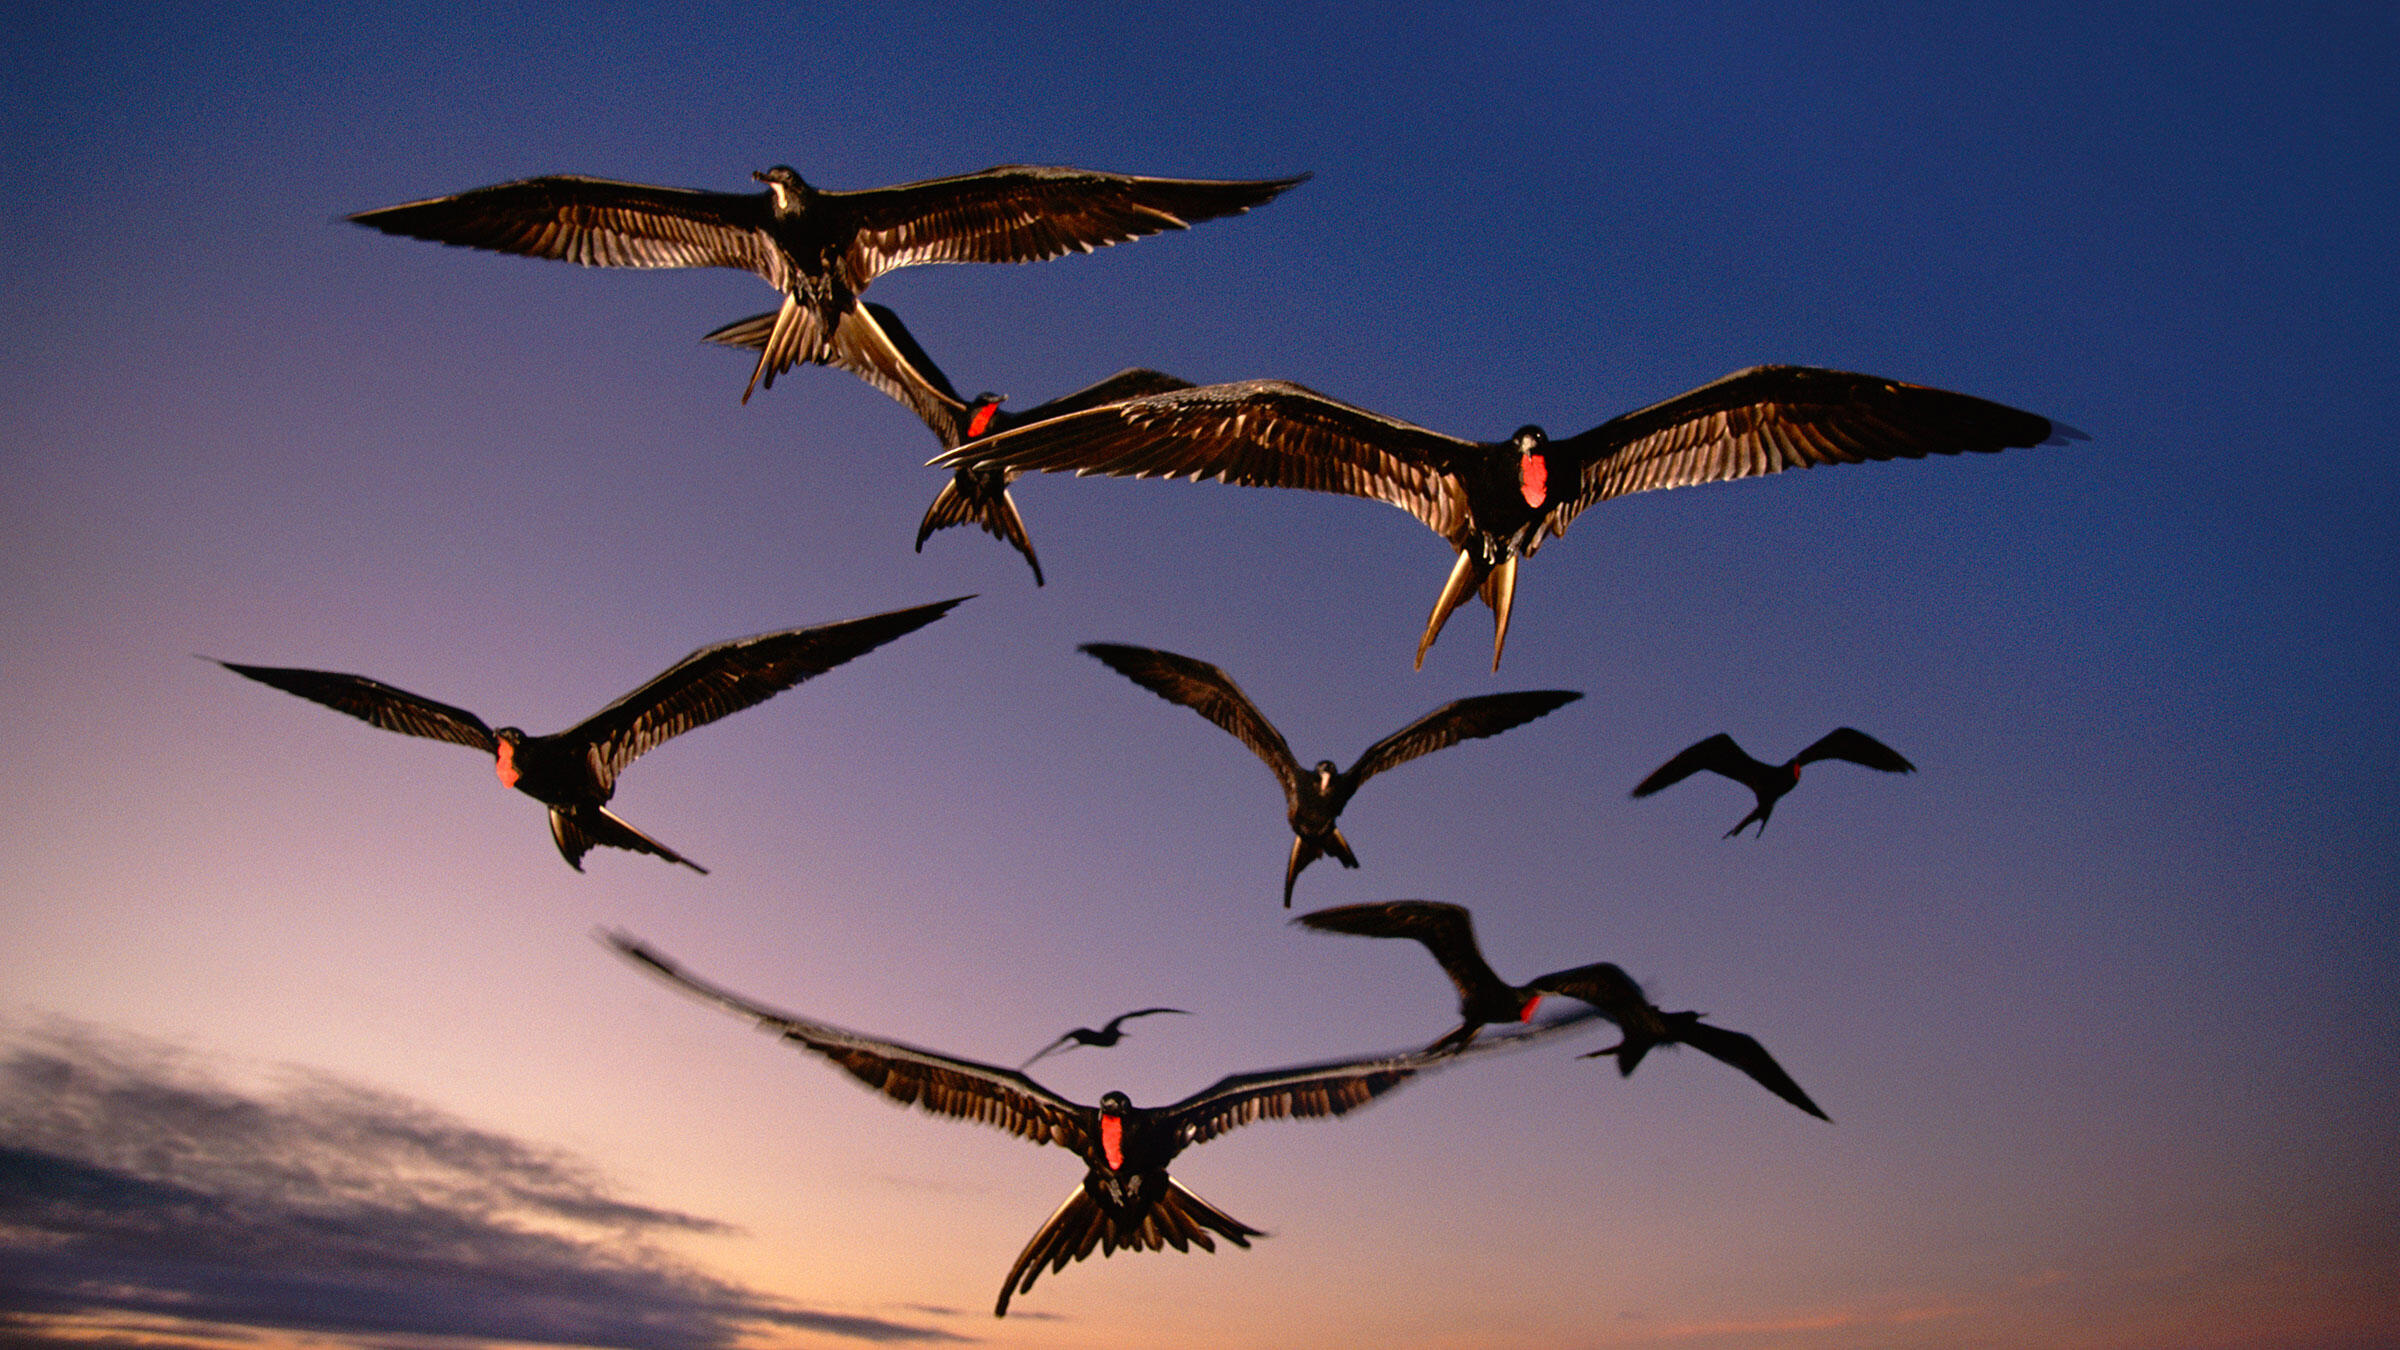 Frigatebirds in flight in the Galápagos Islands. Frans Lanting/National Geographic Creative